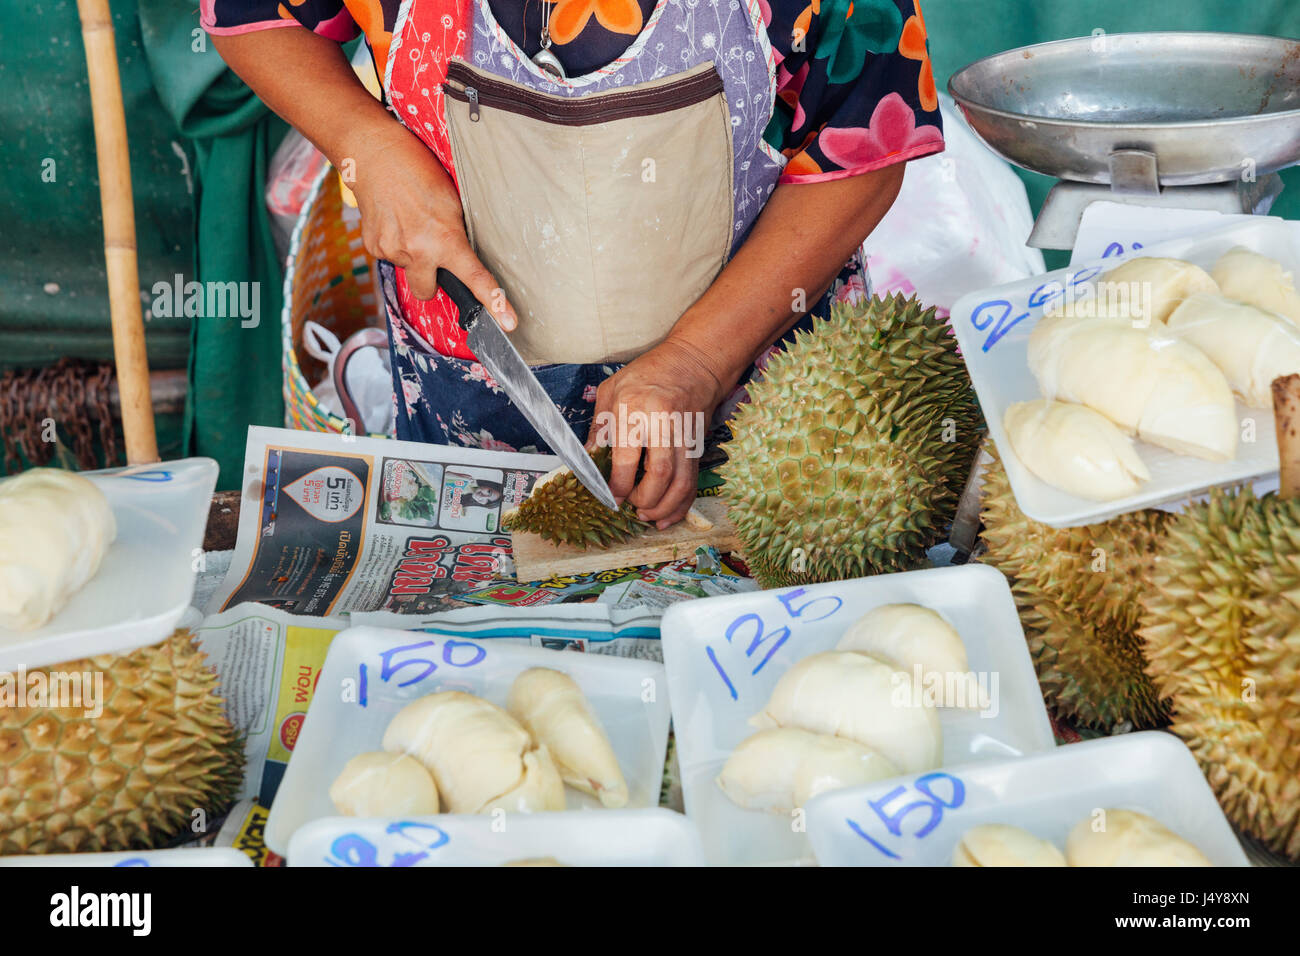 CHIANG MAI, THAILAND - AUGUST 24: Woman cuts durian for sale at the market on August 23, 2016 in Chiang Mai, Thailand. - Stock Image